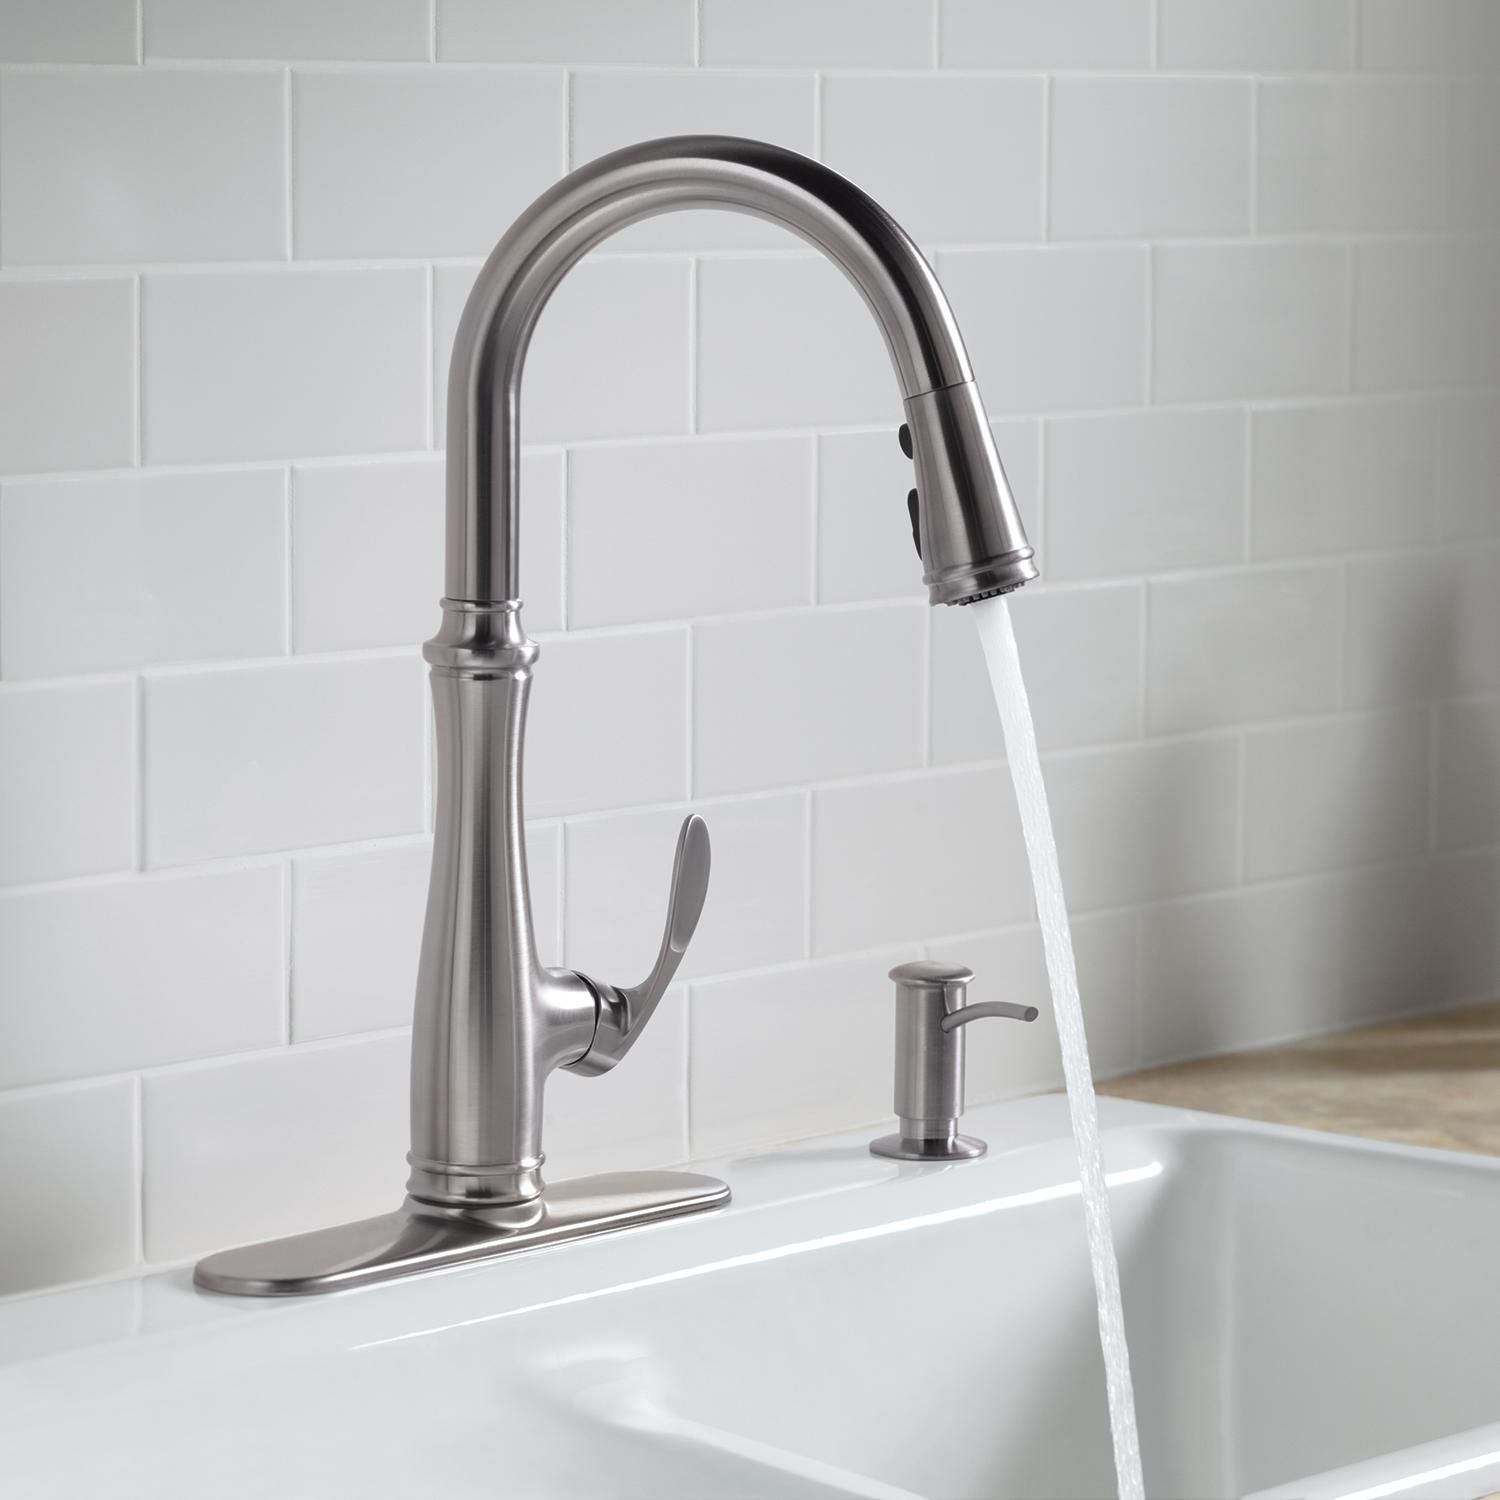 Kraus Sinks Vs Kohler: Who Makes Better